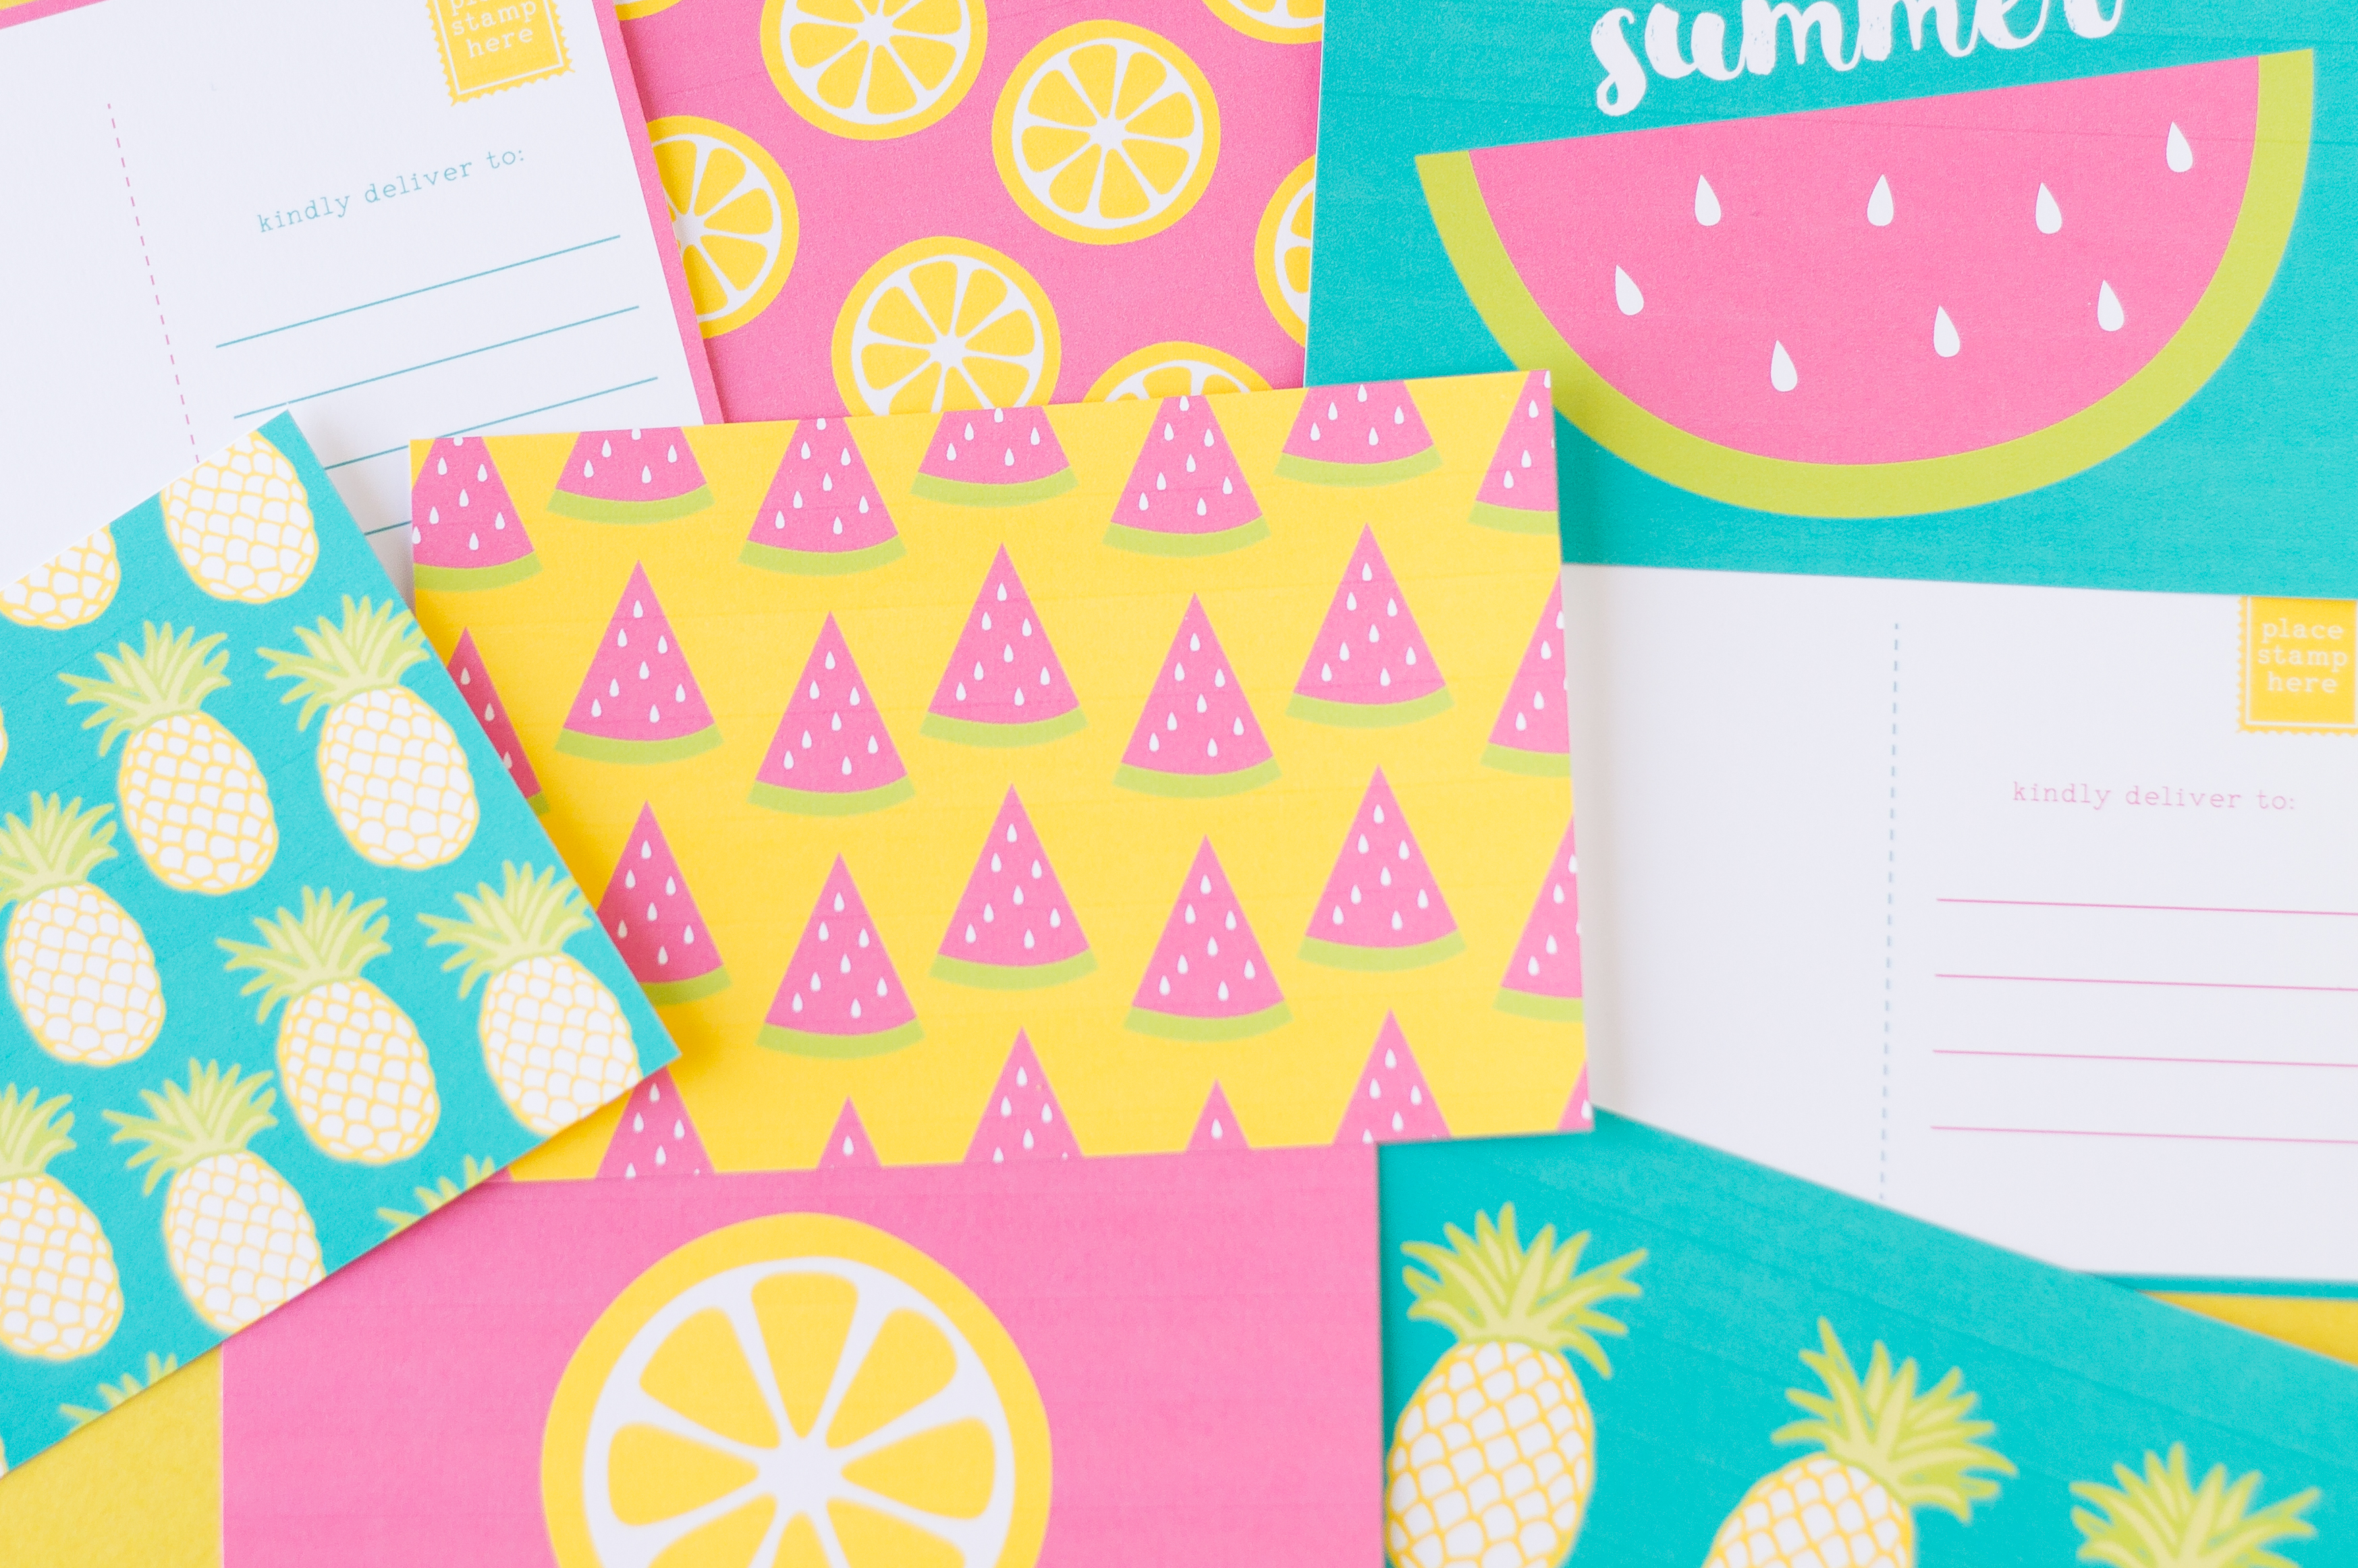 Printable Summer Postcards Capturing Joy with Kristen Duke